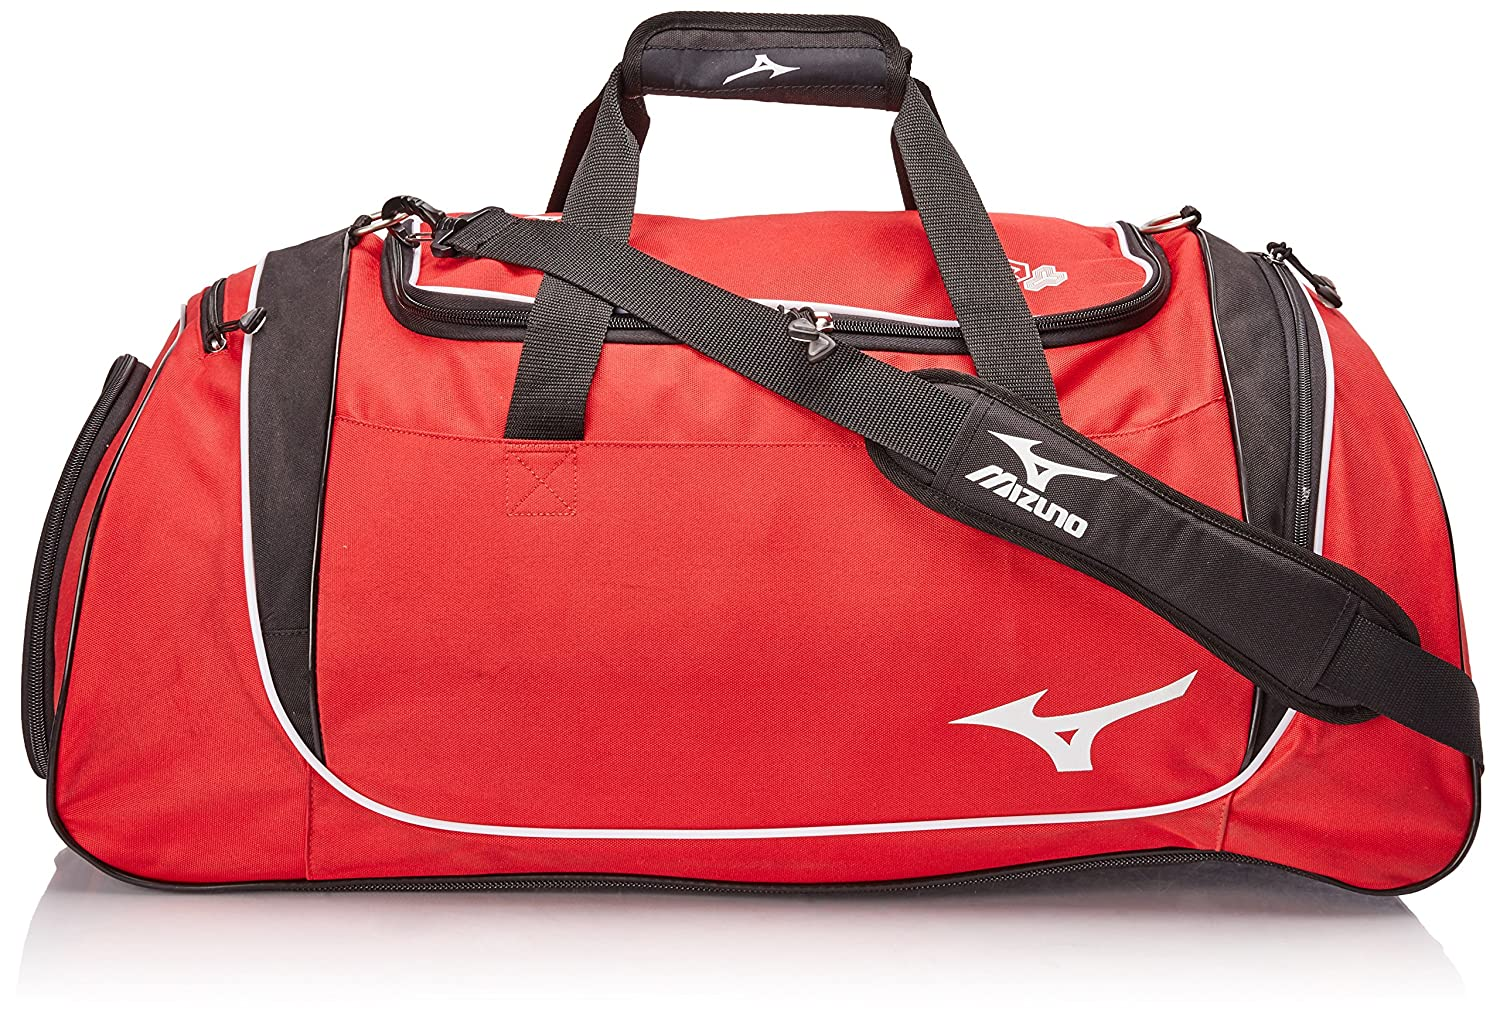 Mizuno Team Duffle Bag, 26 x 14 x 14, Red/Black 26 x 14 x 14 360169.1090.01.0000